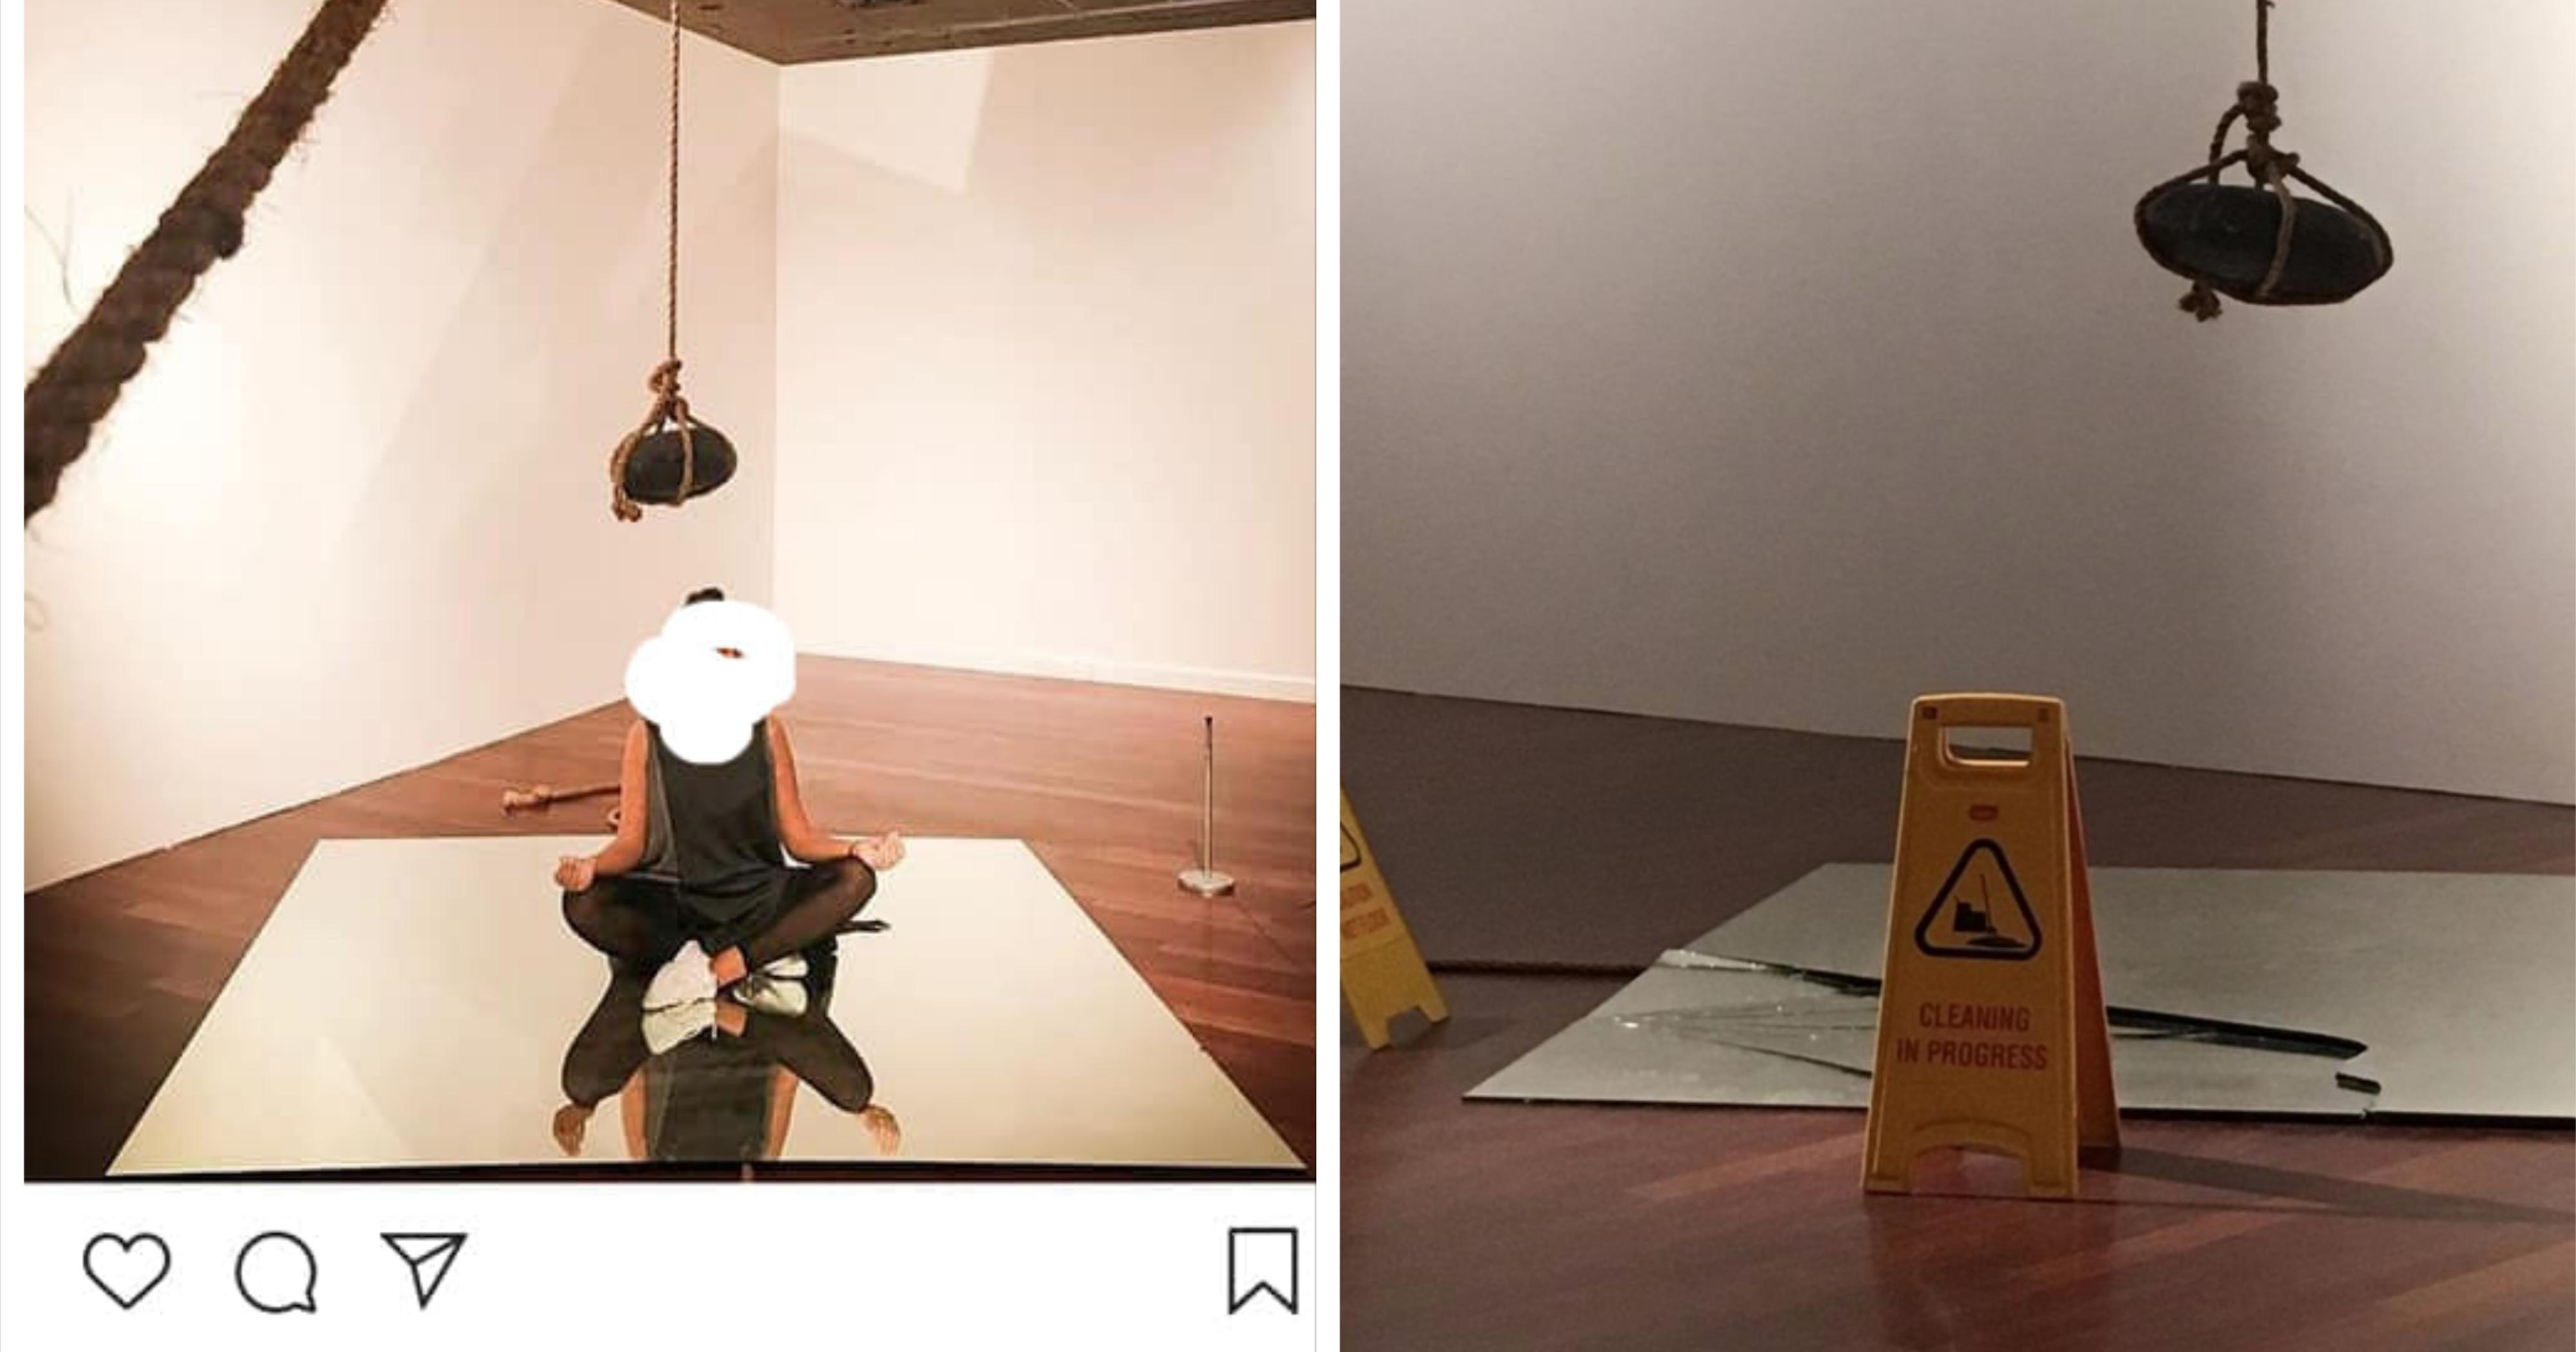 Instagrammers in M'sia criticised for defiling gallery art during photo-taking